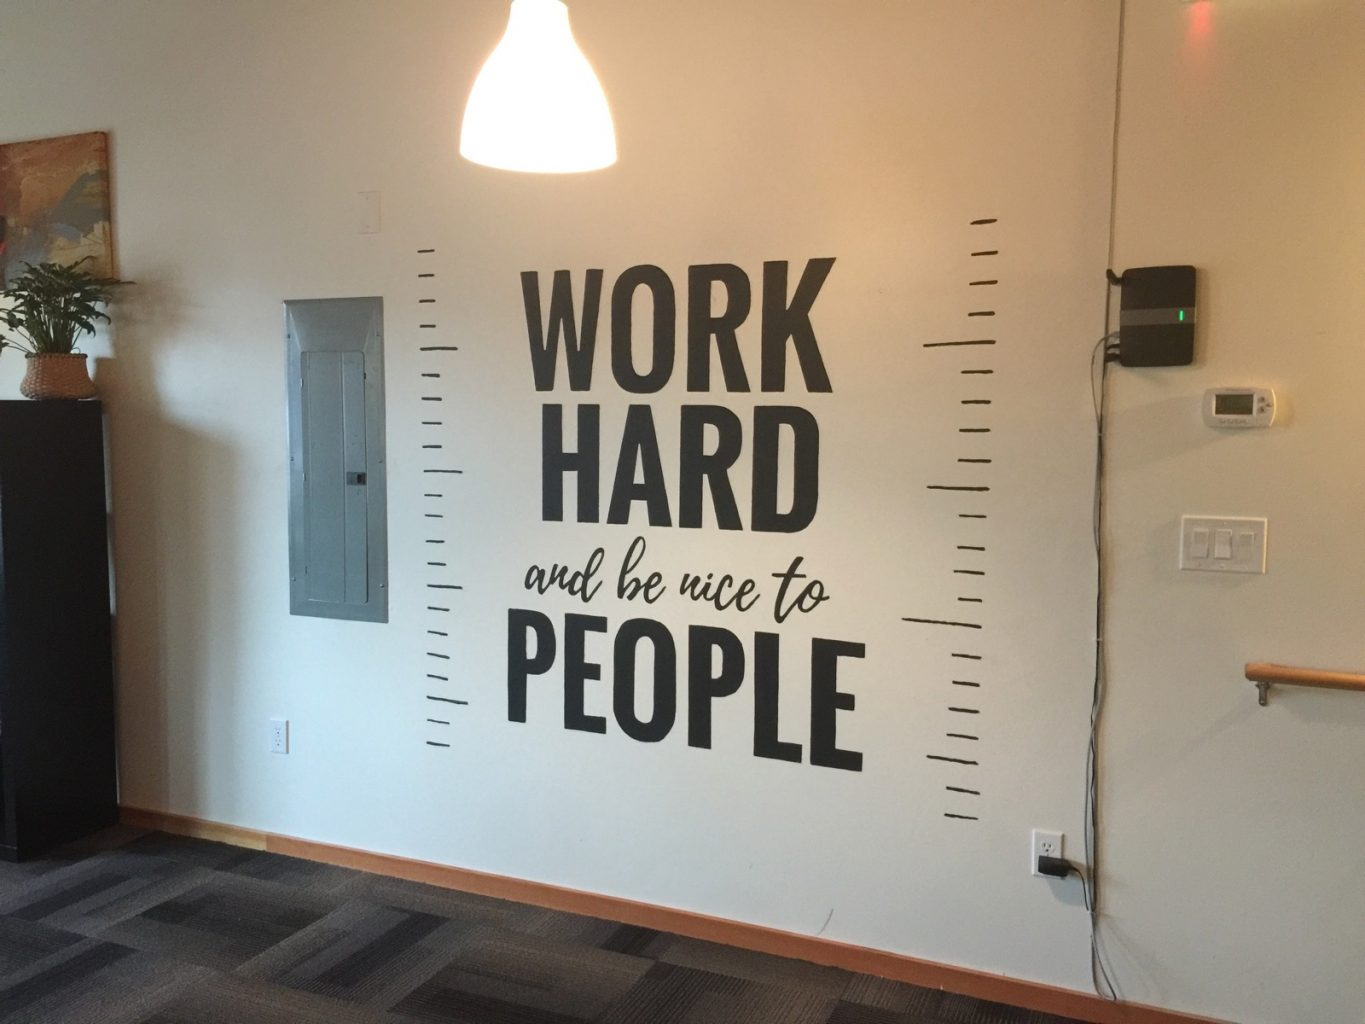 work-hard-and-be-nice-to-people-7